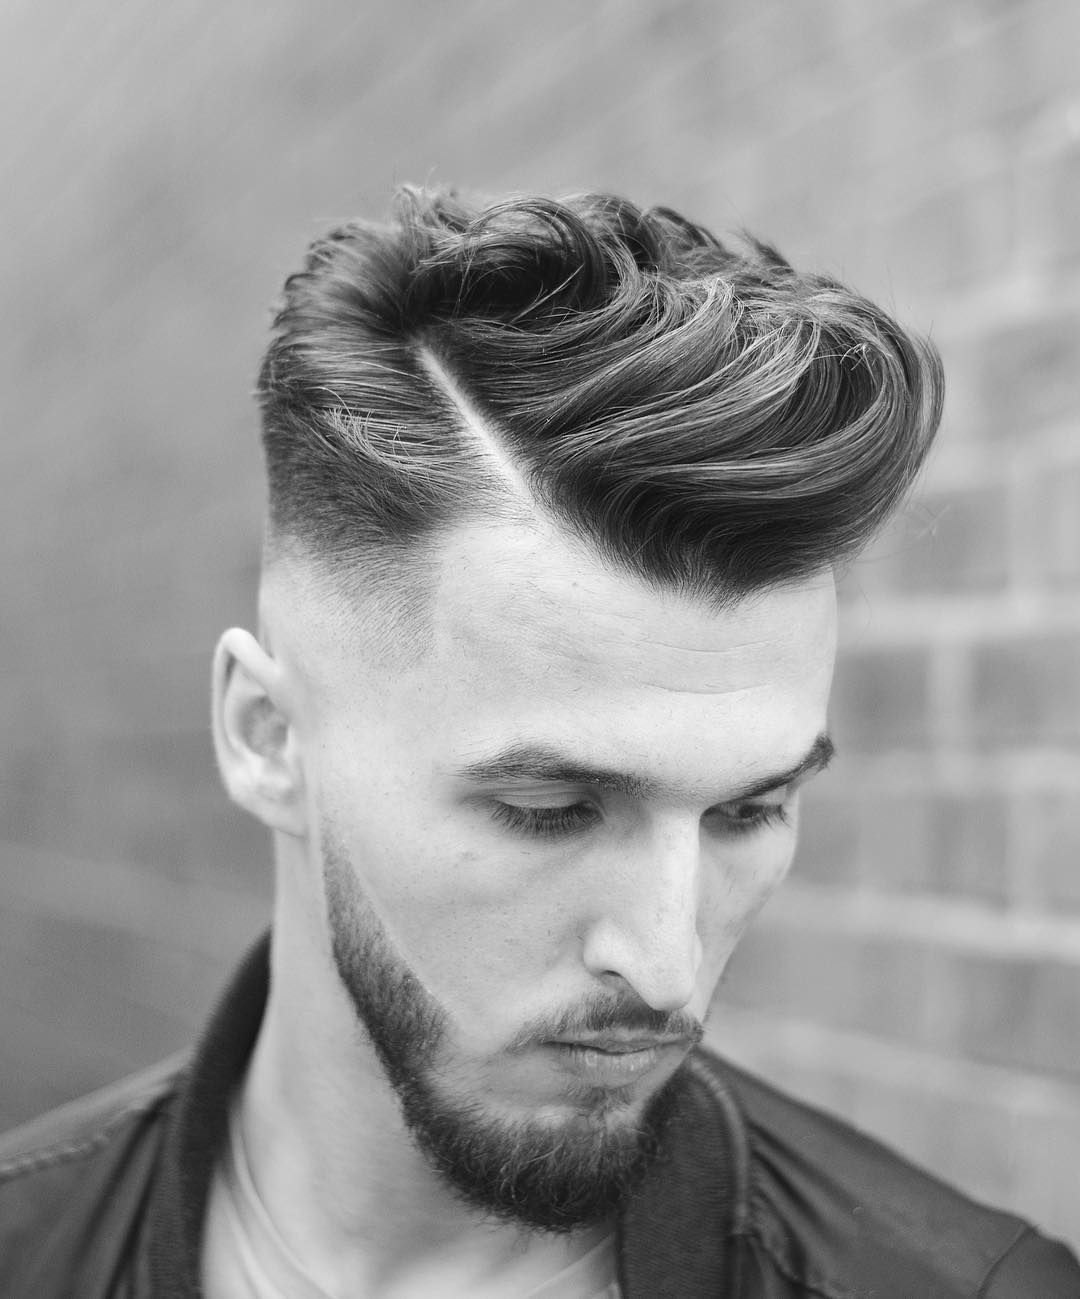 Mens haircuts with beards  menus hairstyles to try in   retro hairstyles hair trends